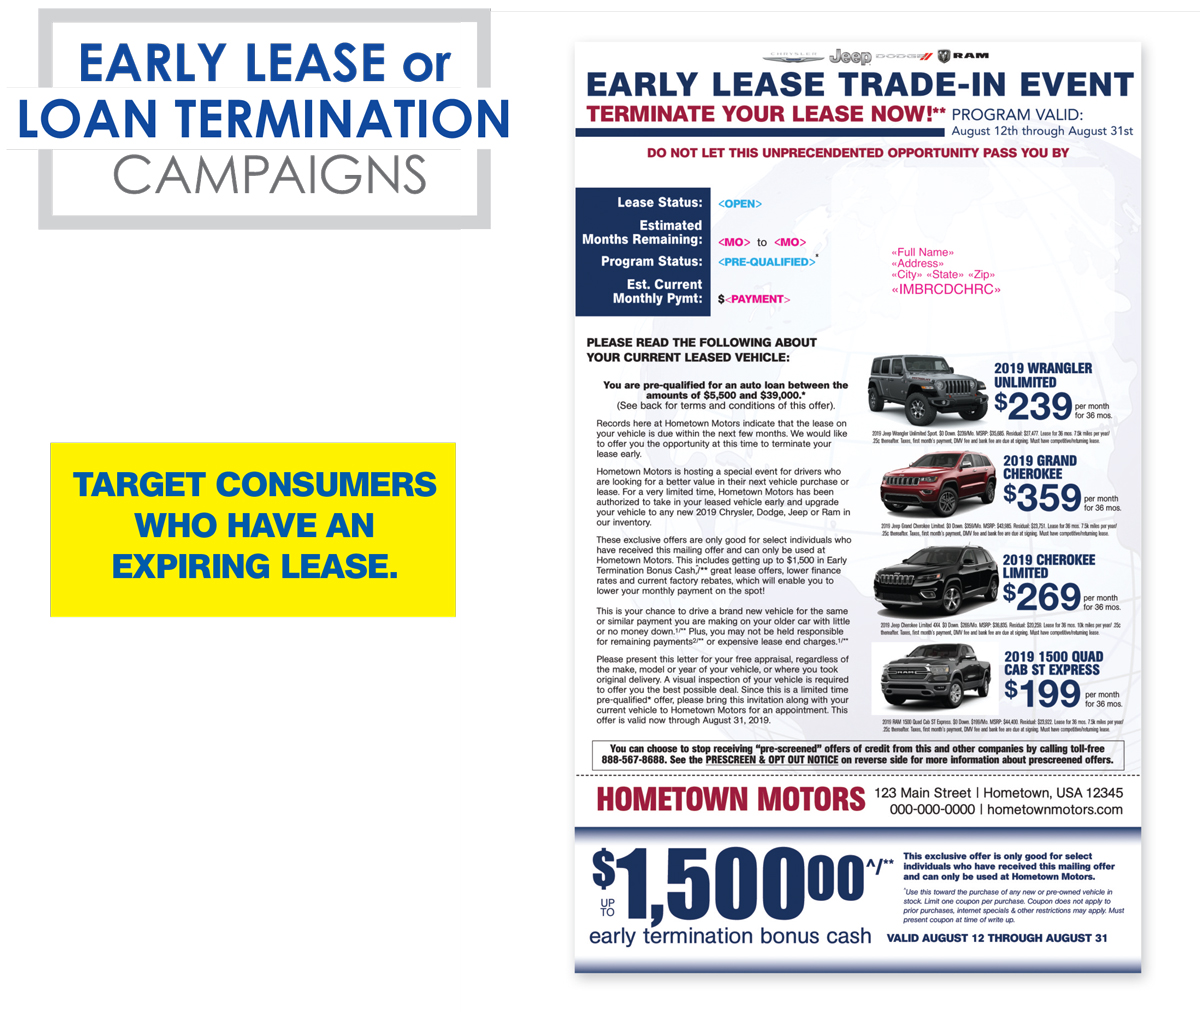 Early Lease Termination Campaigns